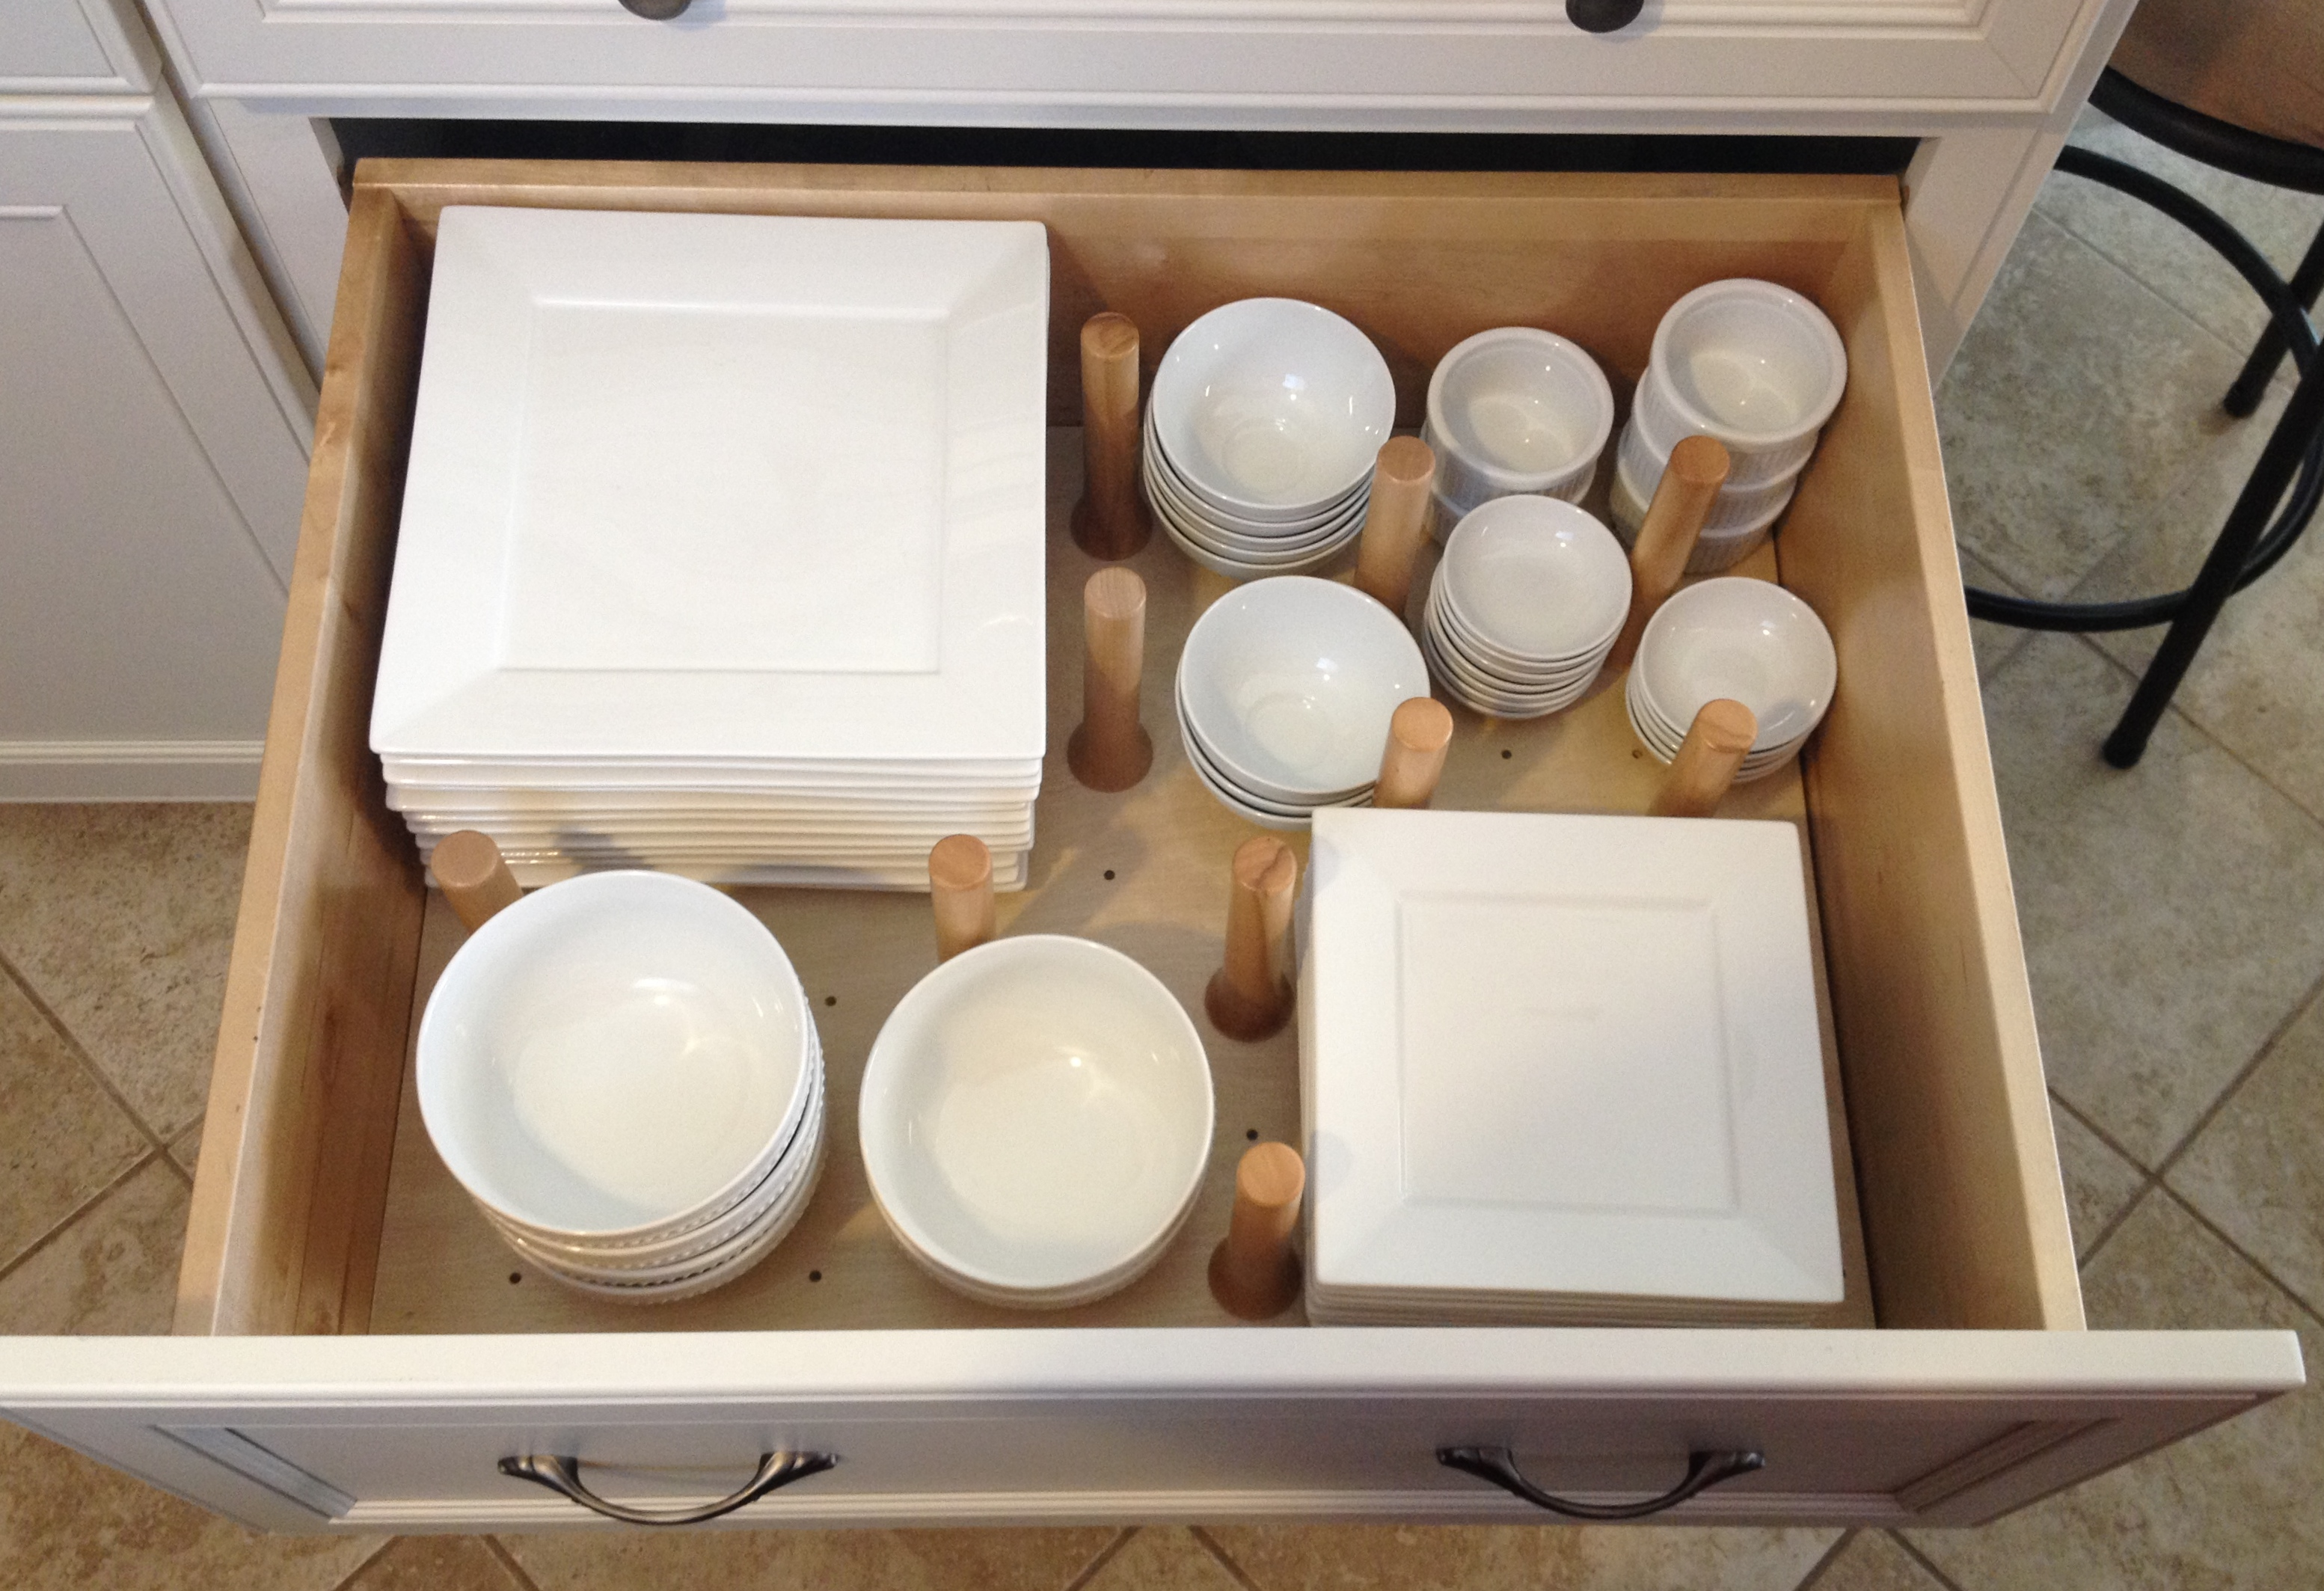 The organized kitchen: Drawer peg storage organizer for dishes | Inspiredhaven.com